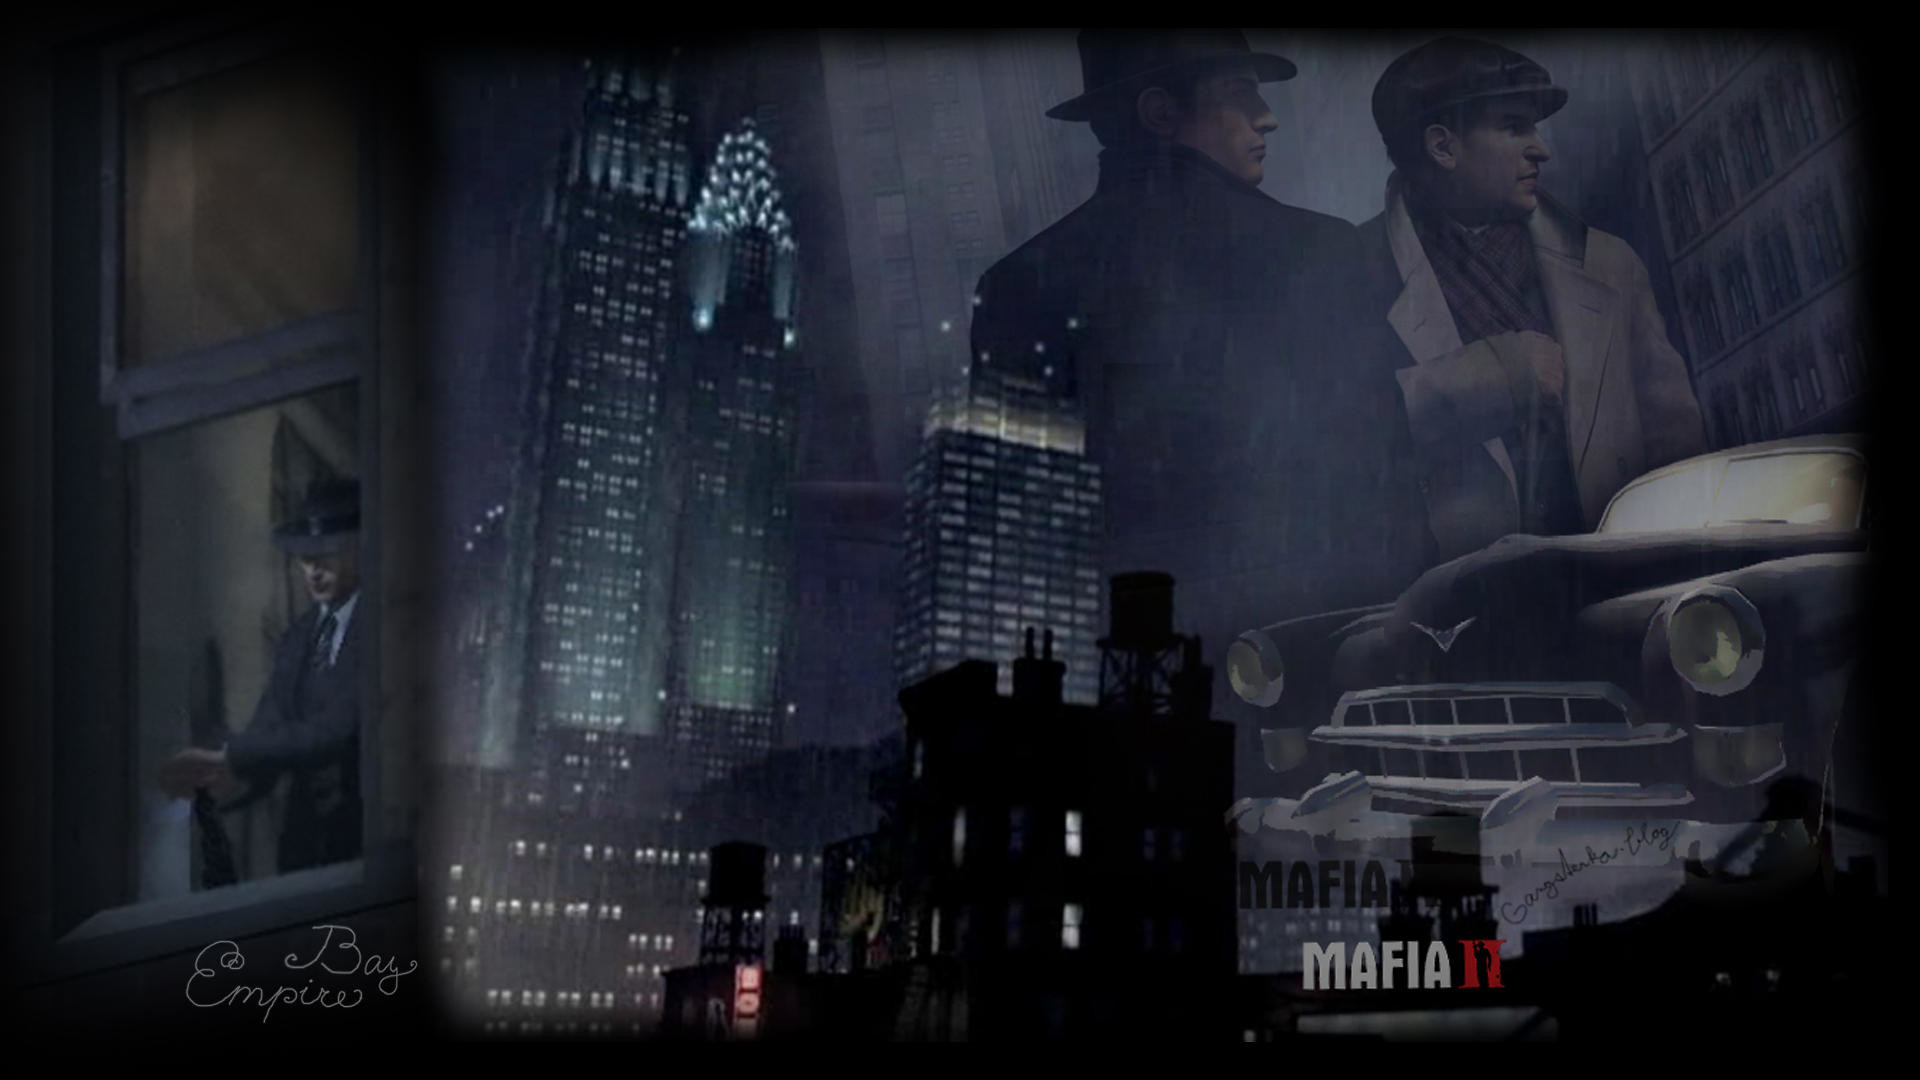 Mafia 2 Wallpapers 72 Images